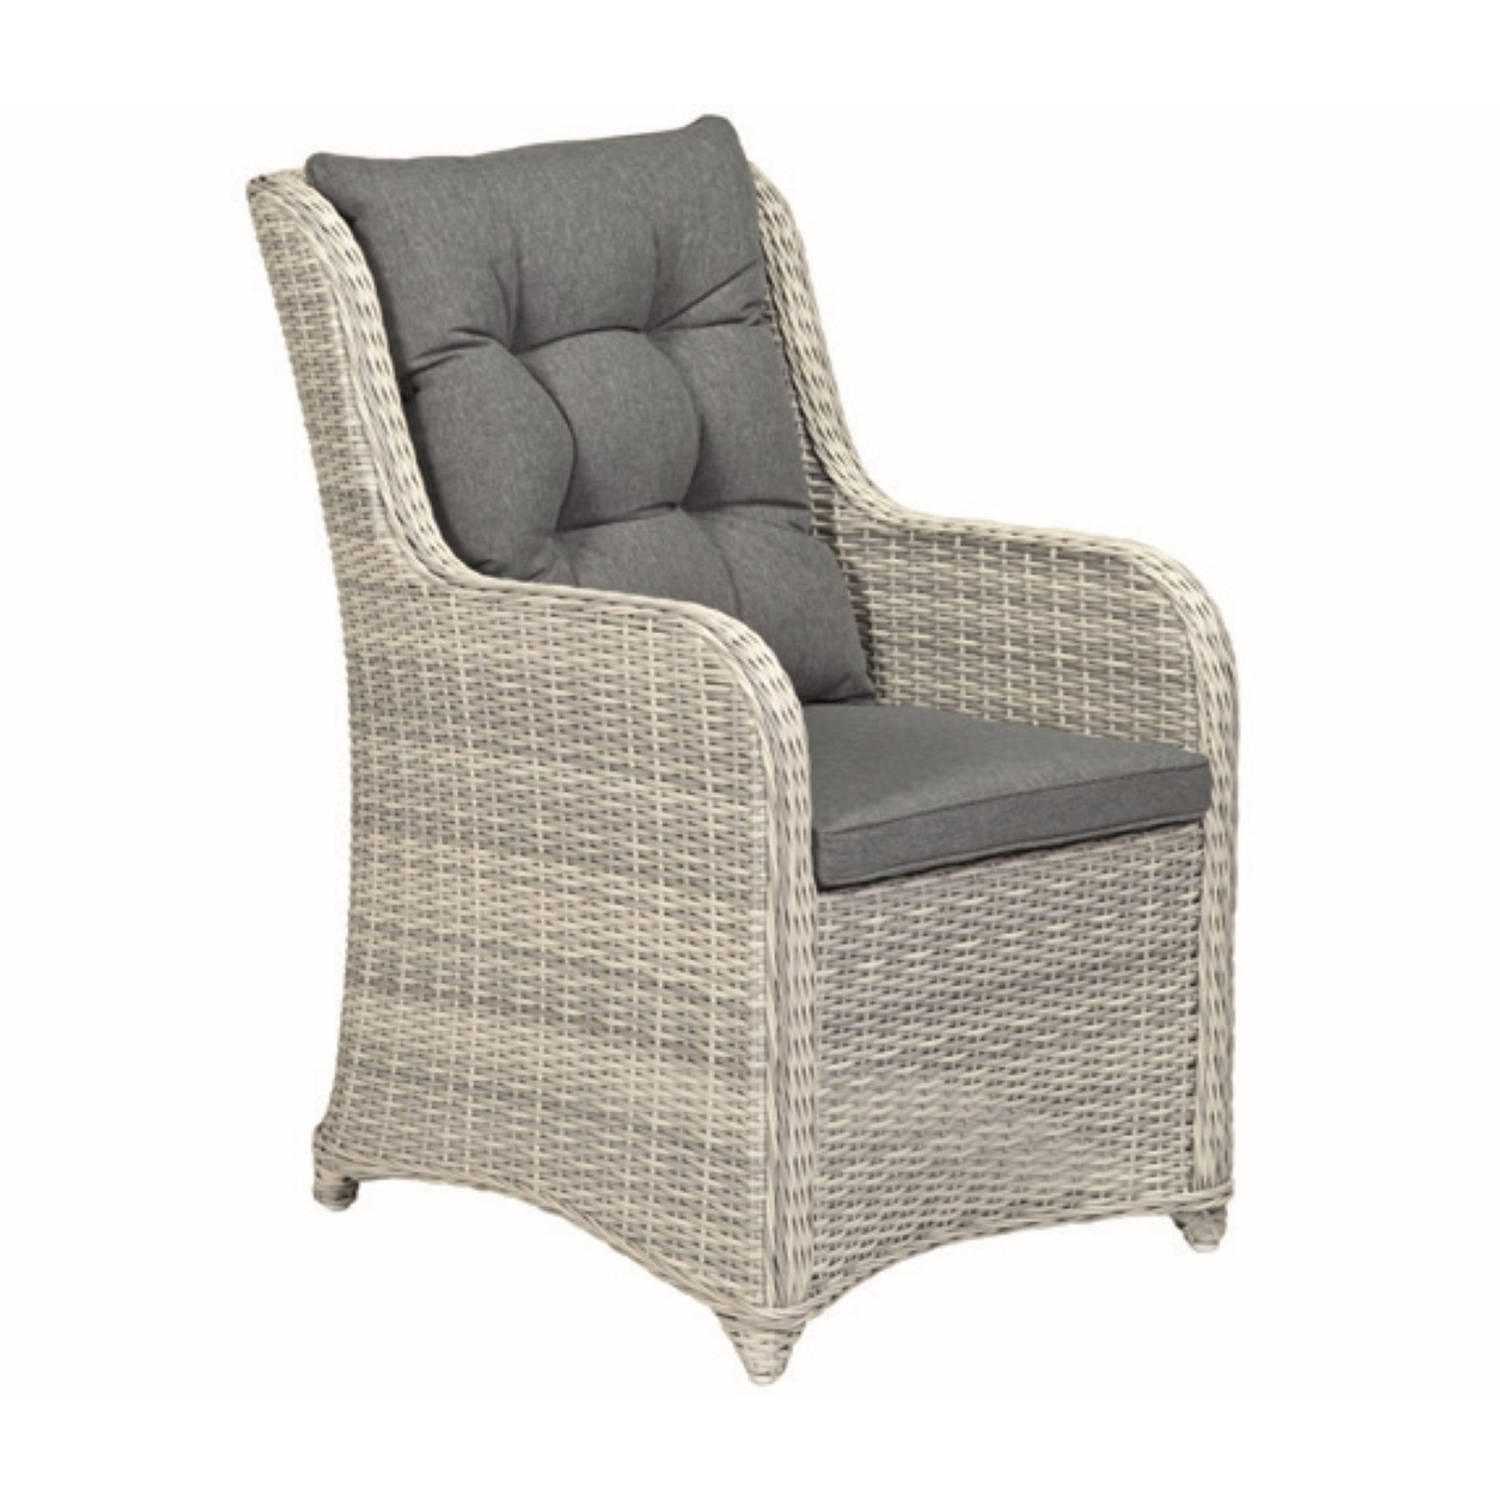 Doncaster Dining Chair Oyster kopen